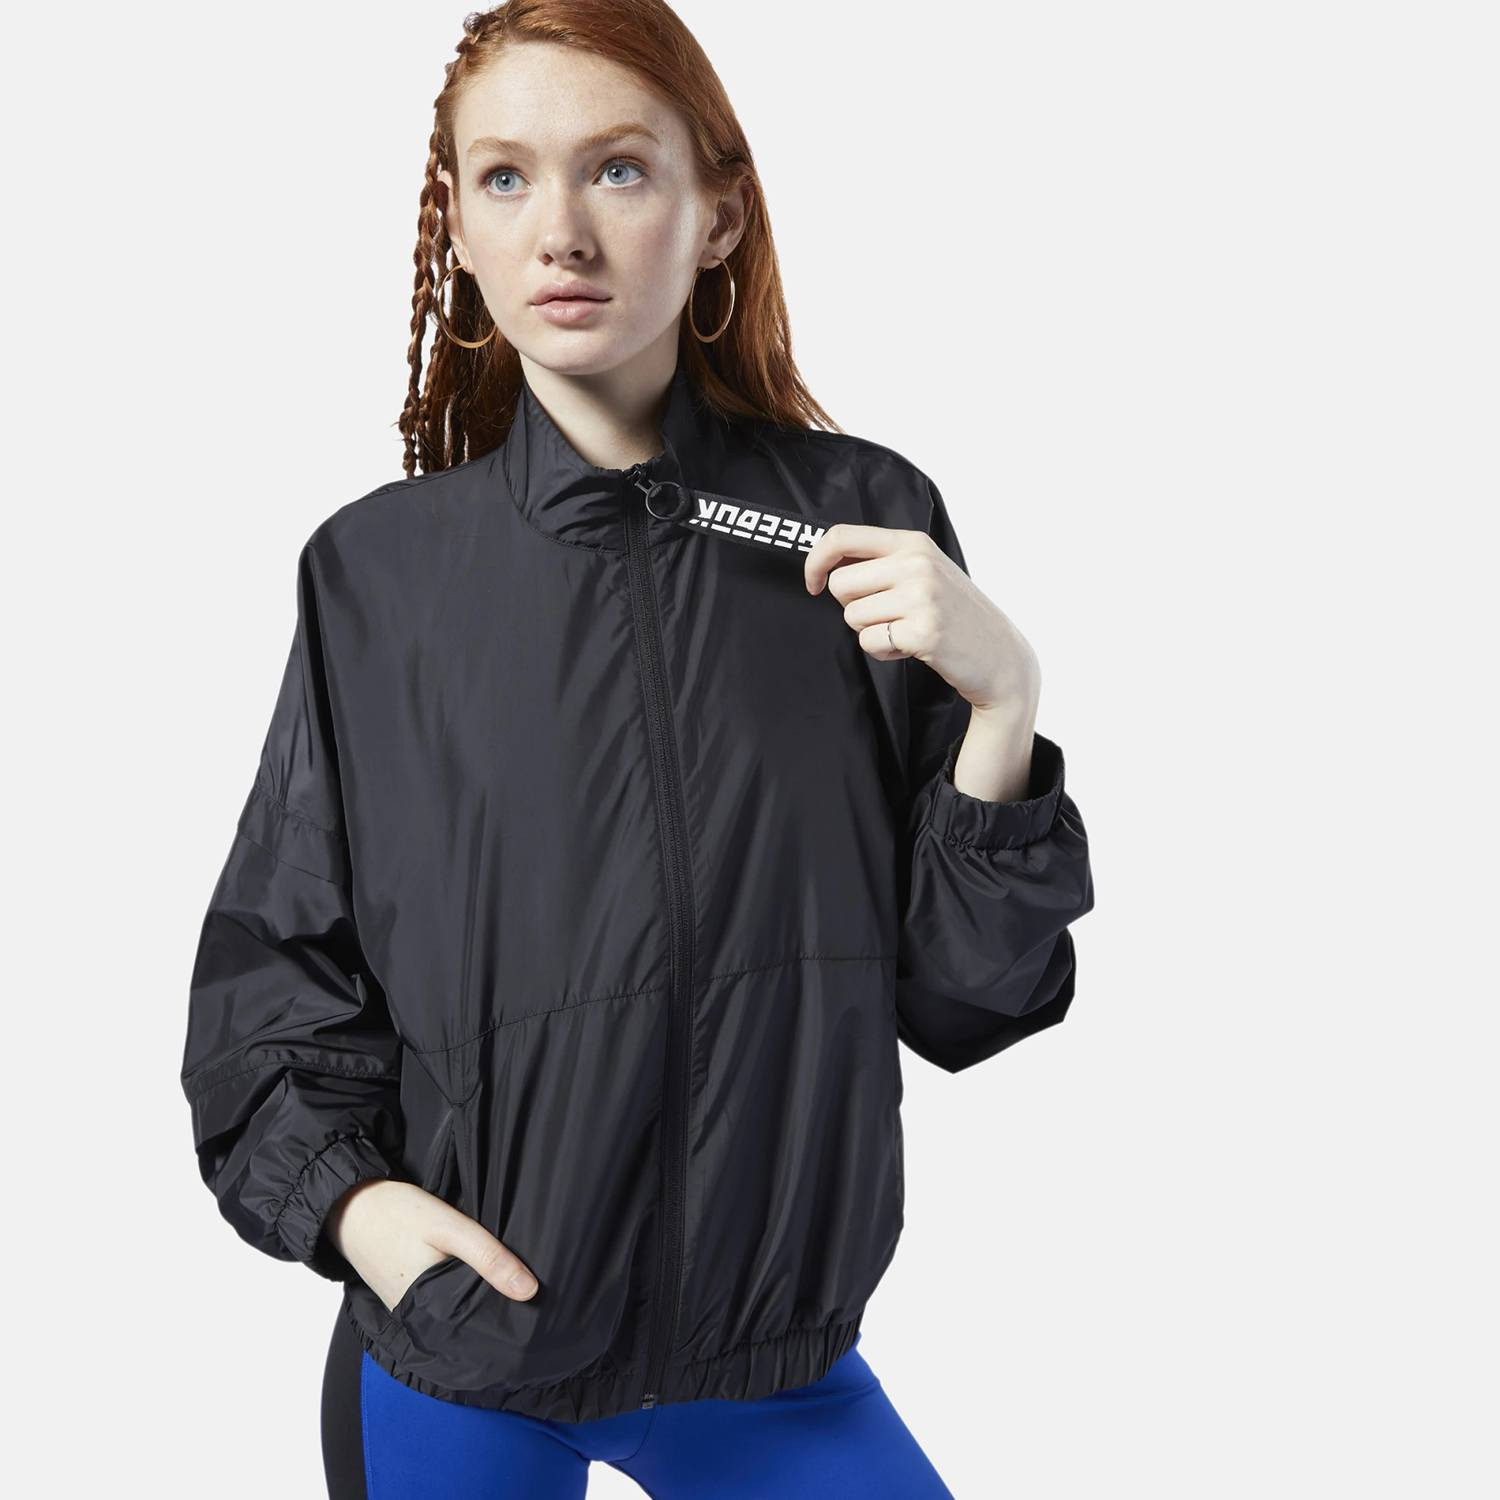 Reebok Meet You There Woven Jacket - Γυναικεία Ζακέτα (9000032986_1469)